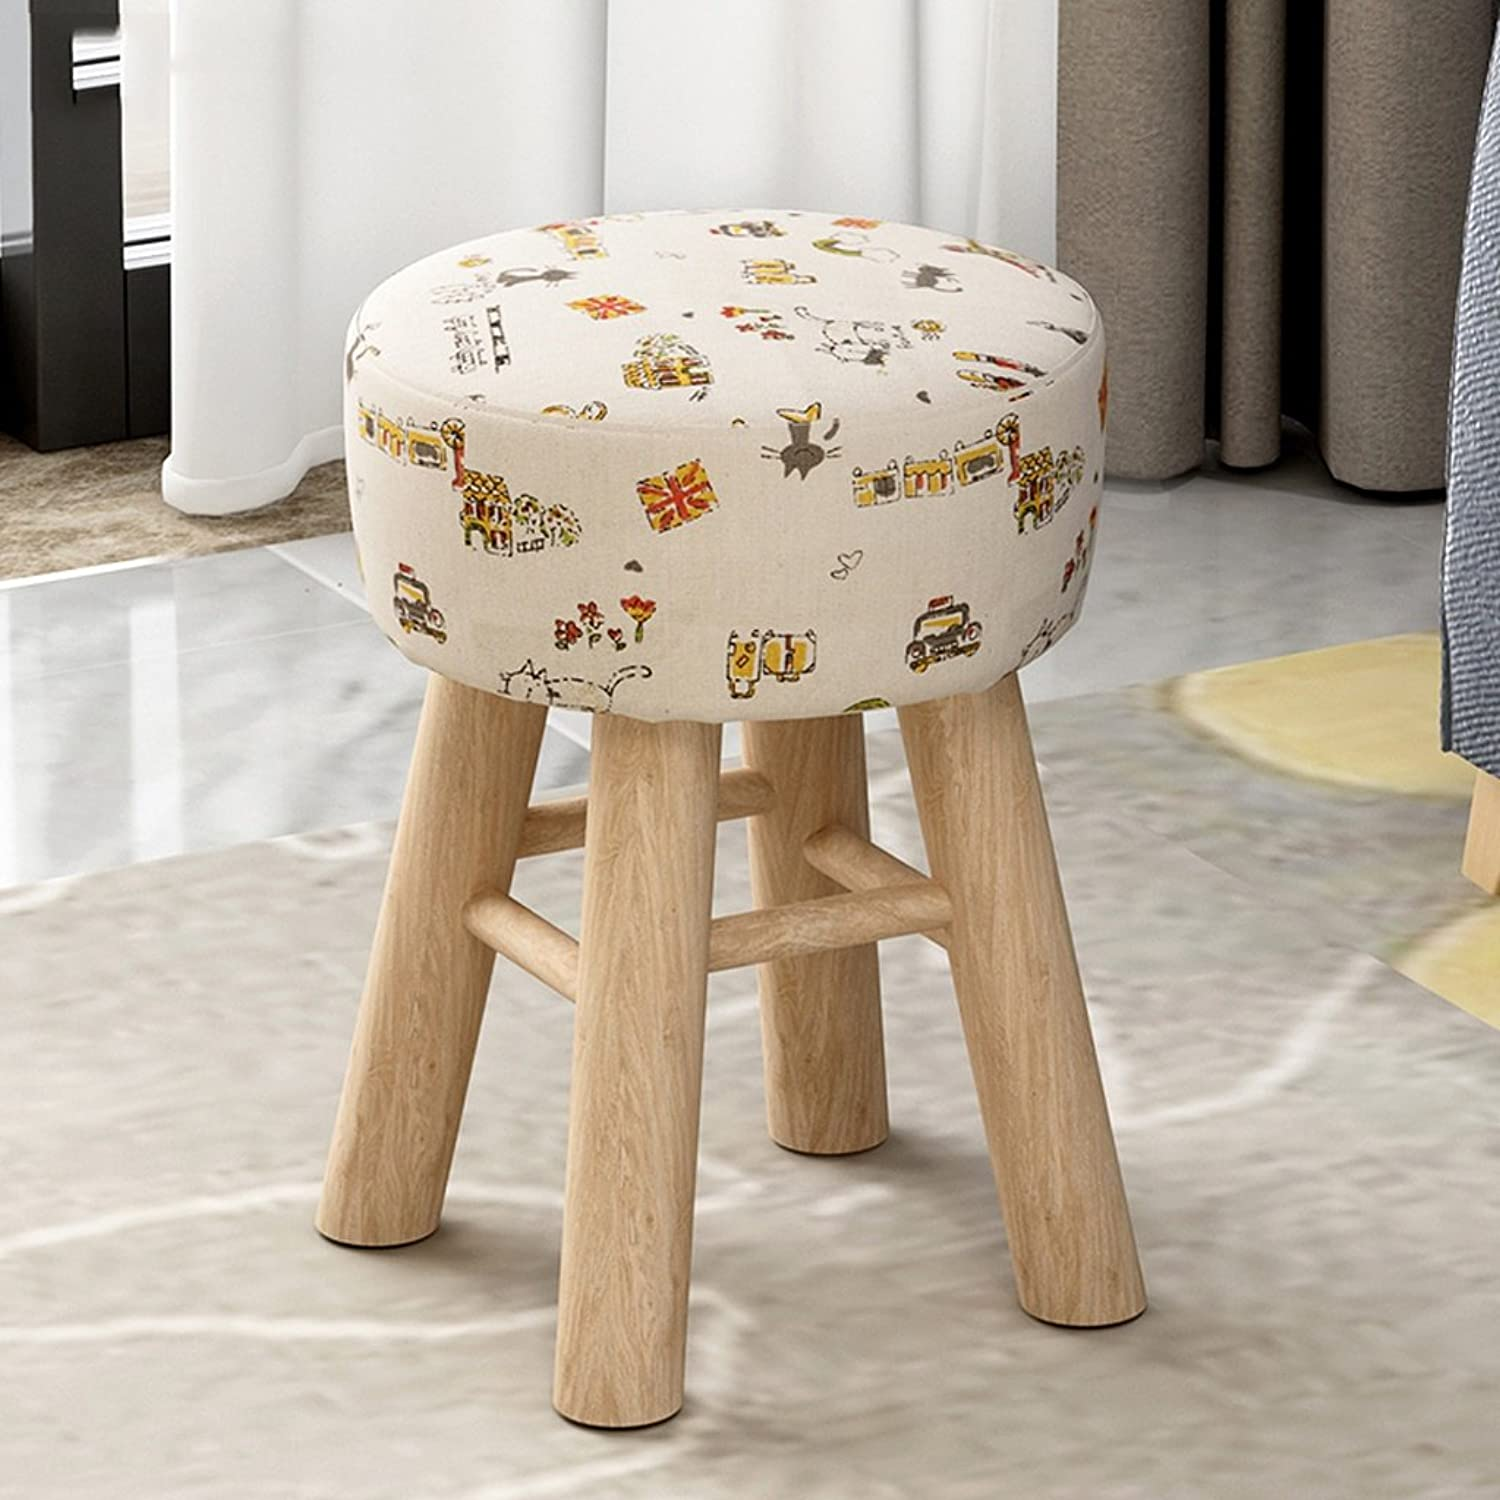 ALUS- Home Stool Fashion Ideas Small Bench Sofa Stool Round Stool (color   C)